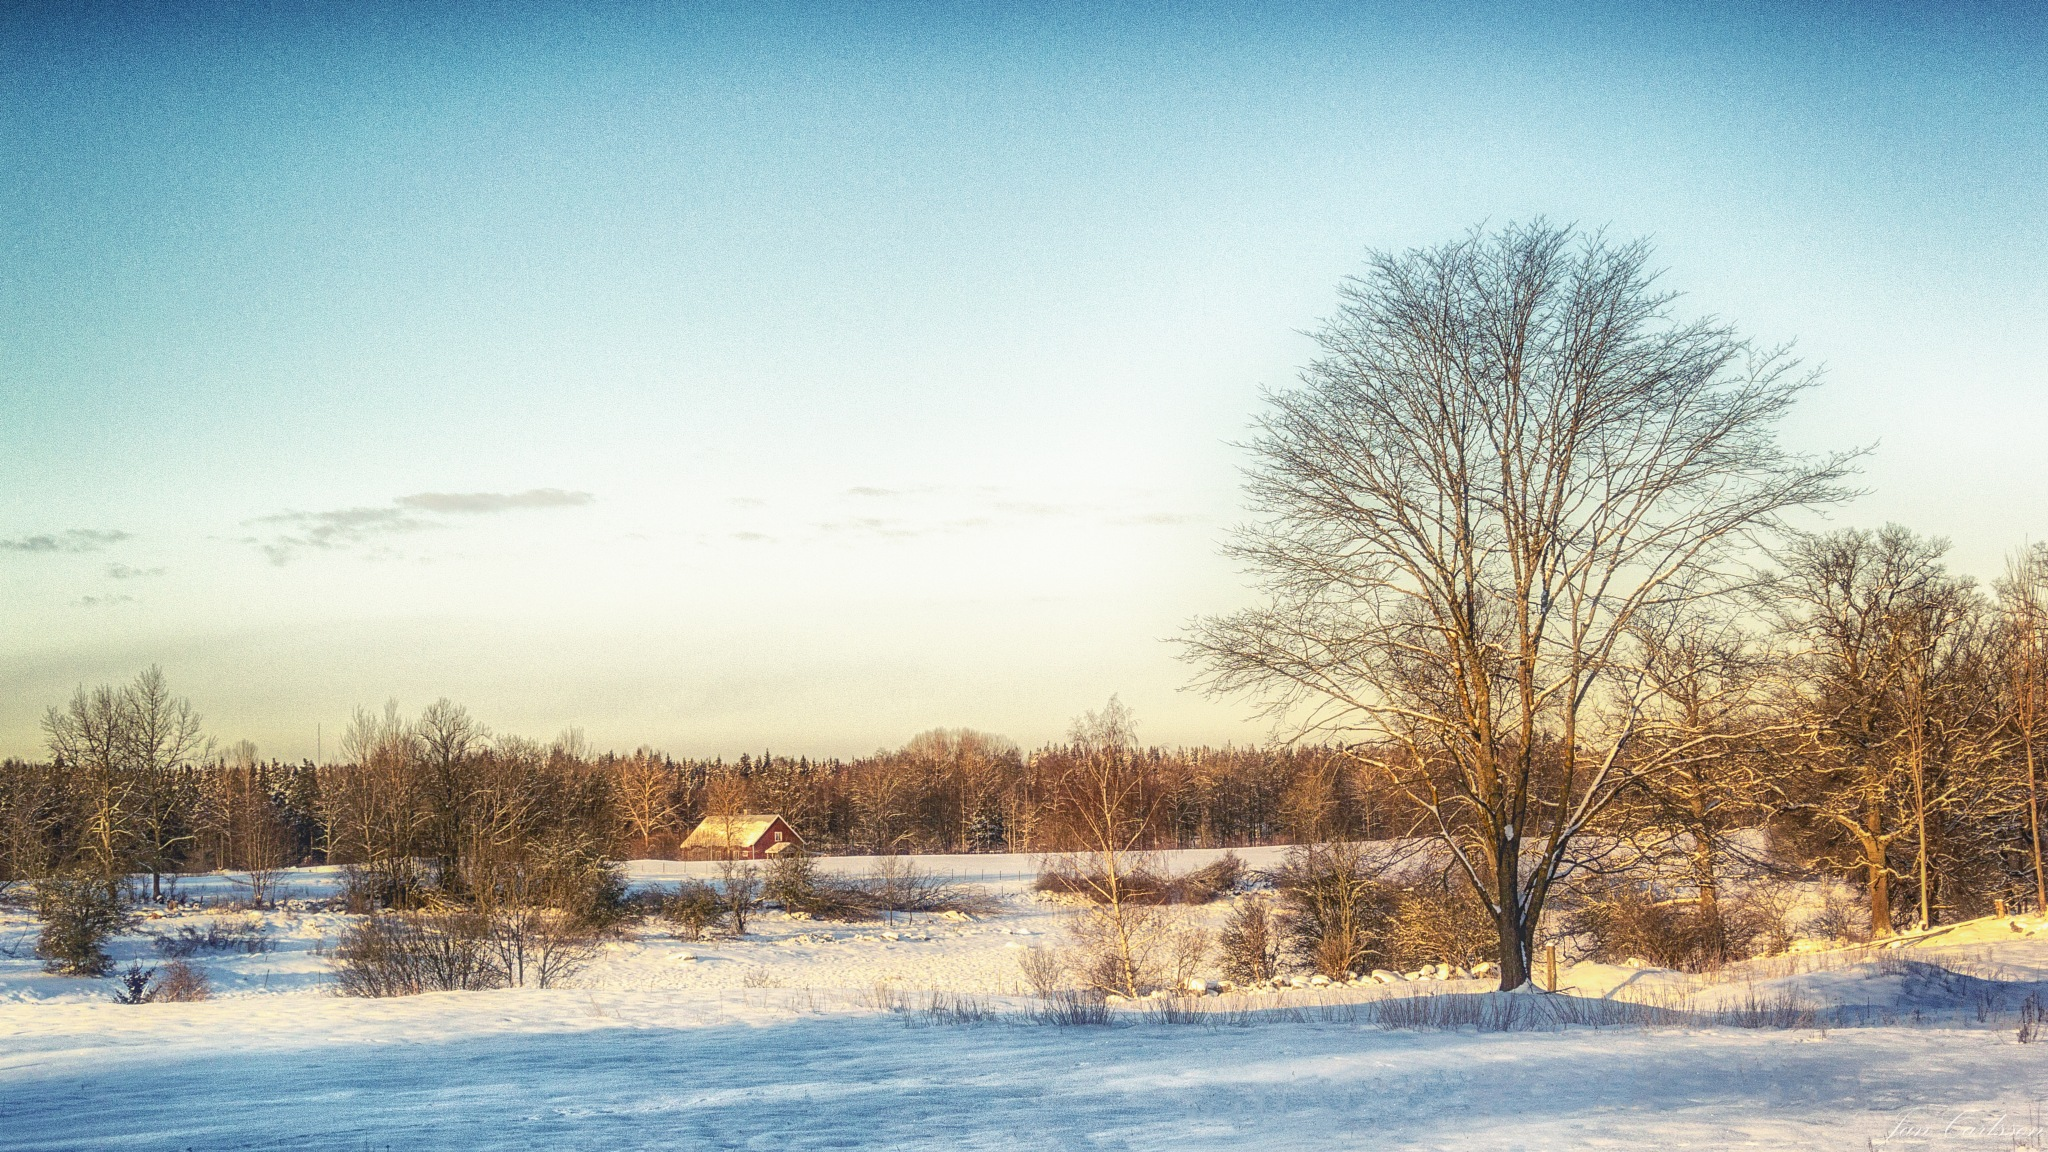 A Very Cold February Morning in the Middle of Nowhere by carljan w carlsson